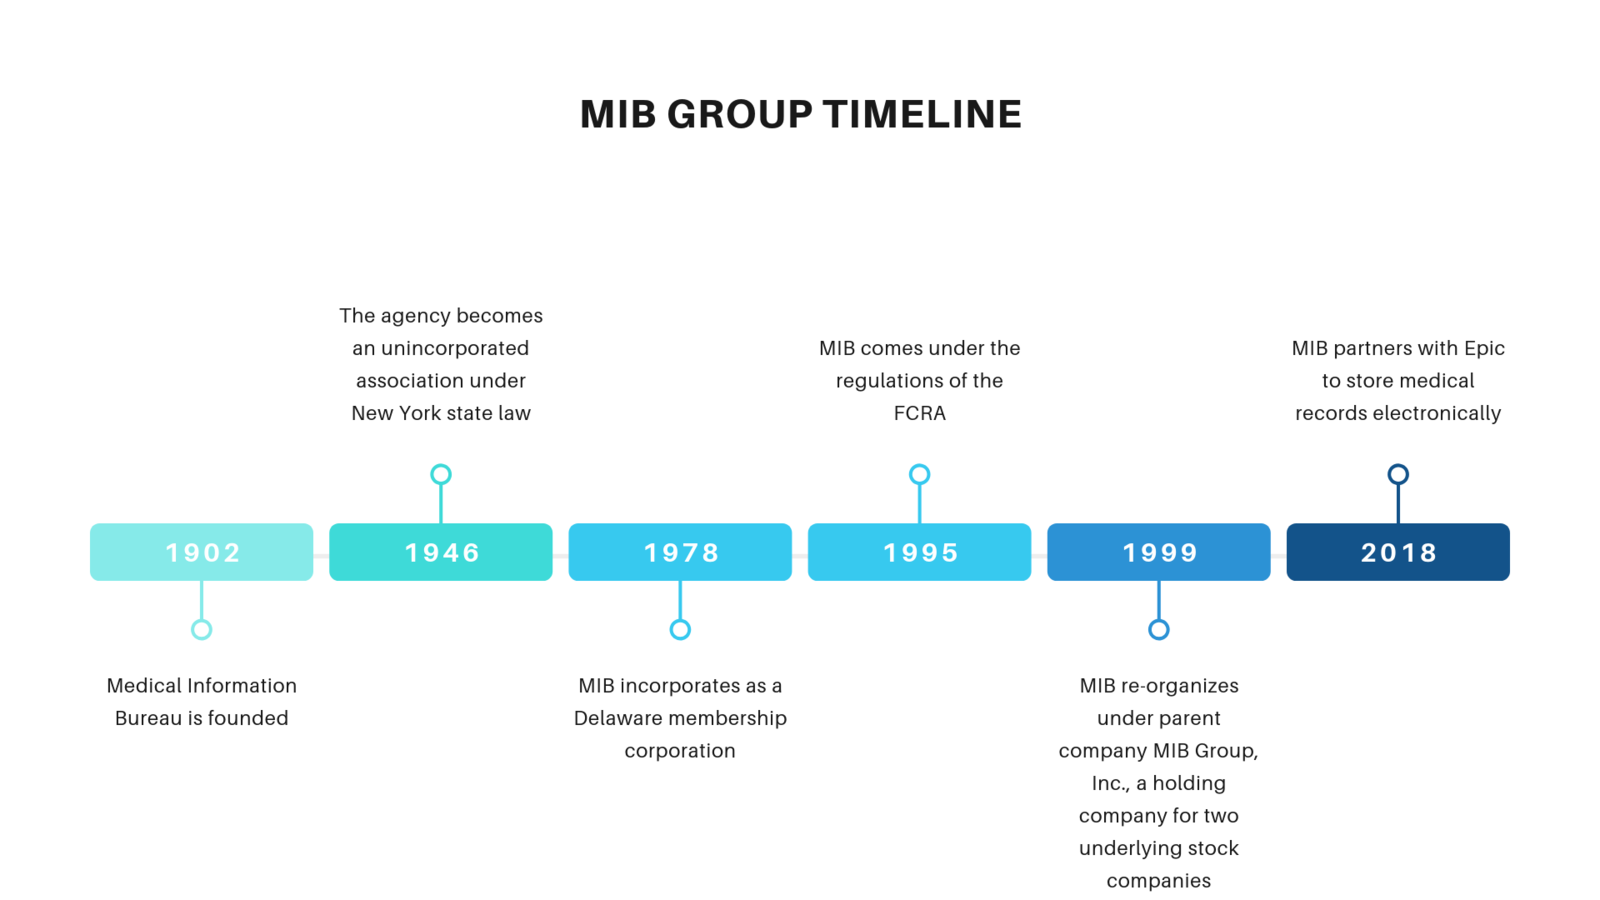 MIB Group timeline